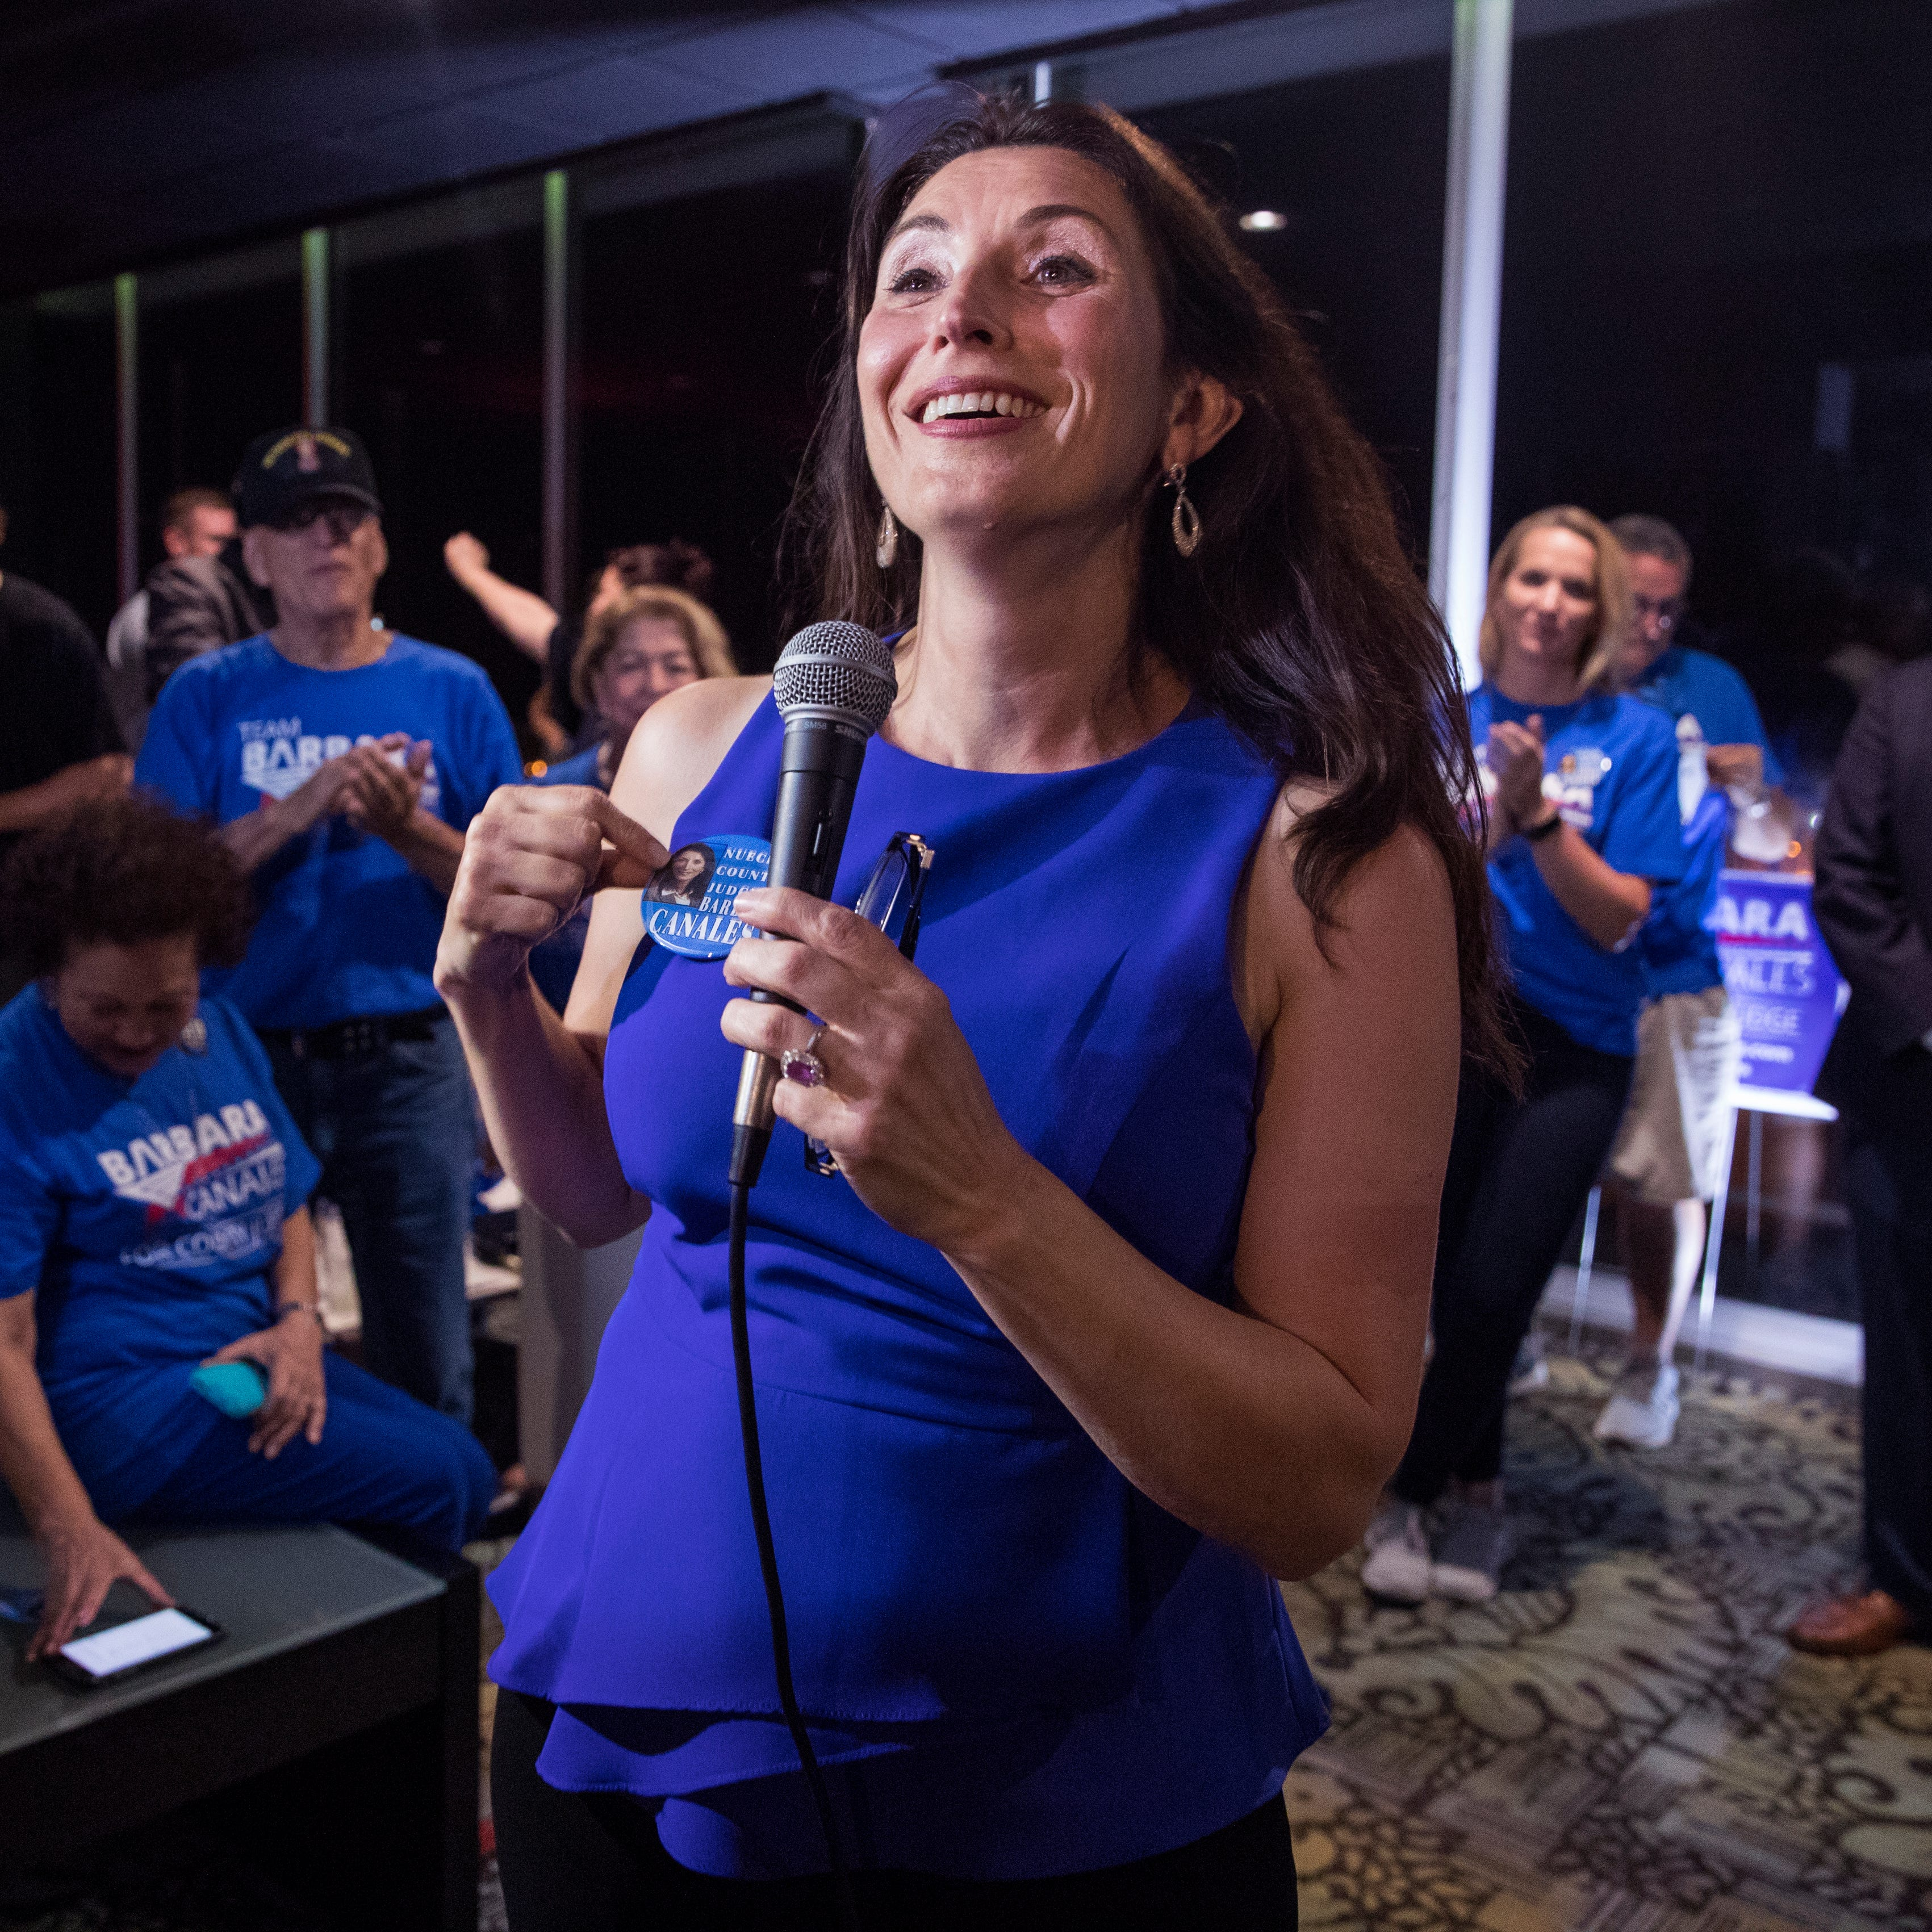 And the winner in Nueces County is ... a bipartisan spirit